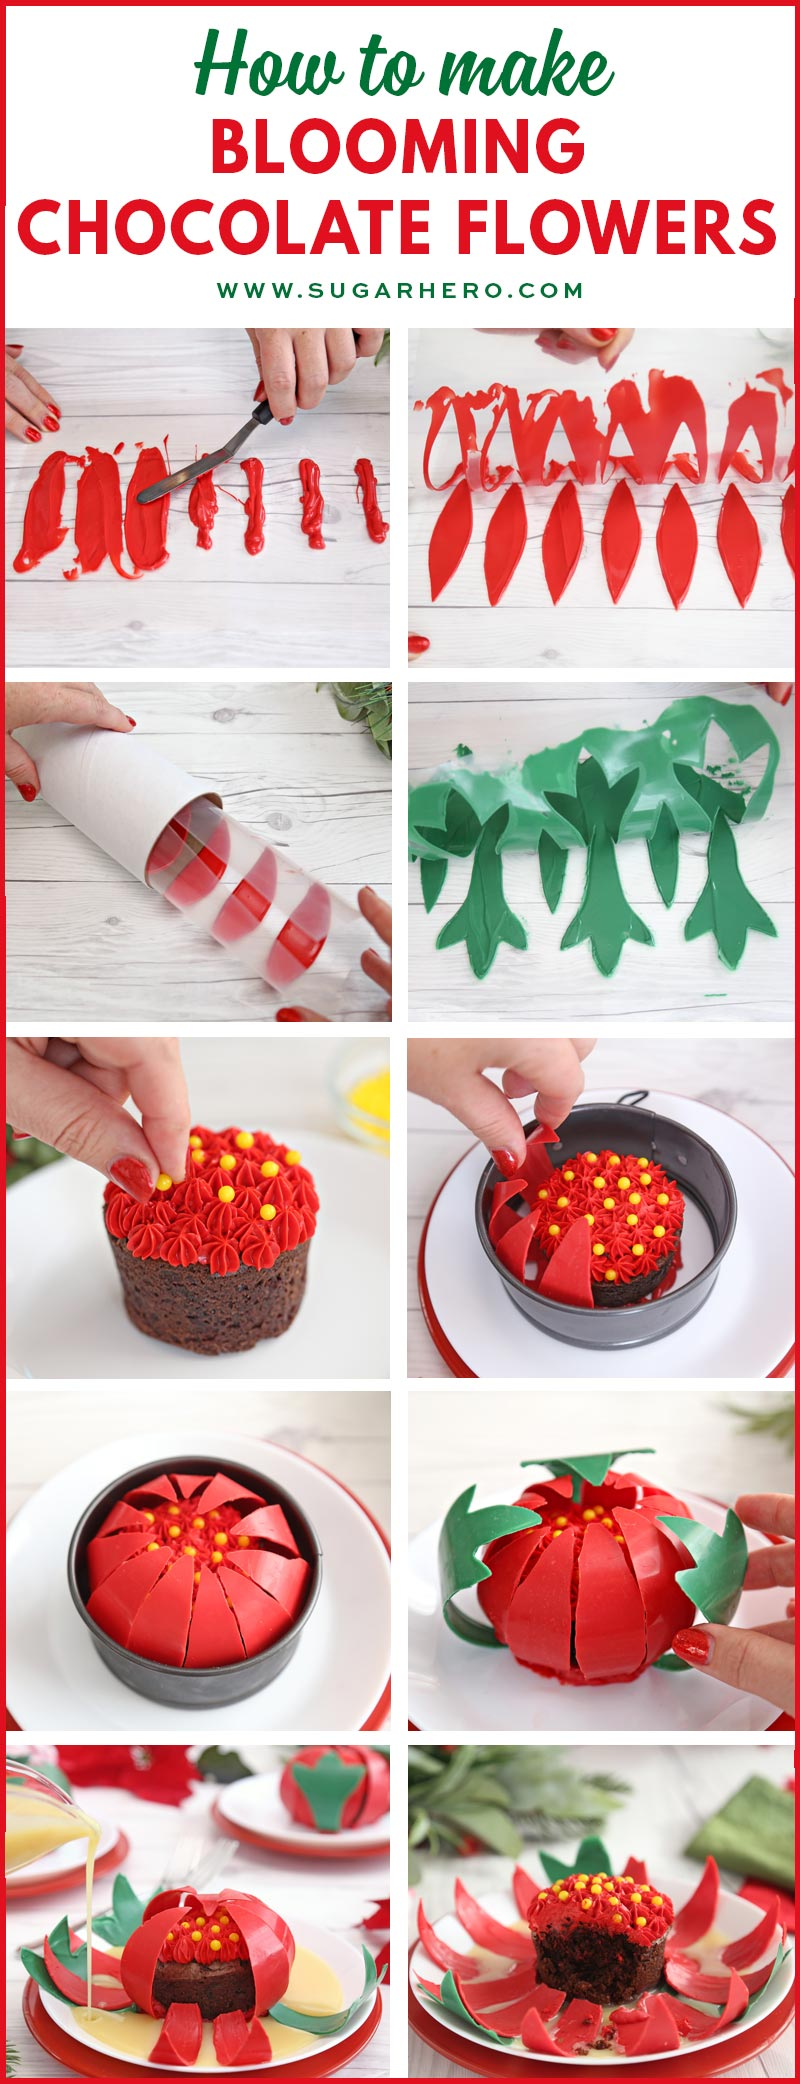 Blooming Chocolate Flowers - photo collage showing step-by-step photos for making a blooming chocolate flower | From SugarHero.com